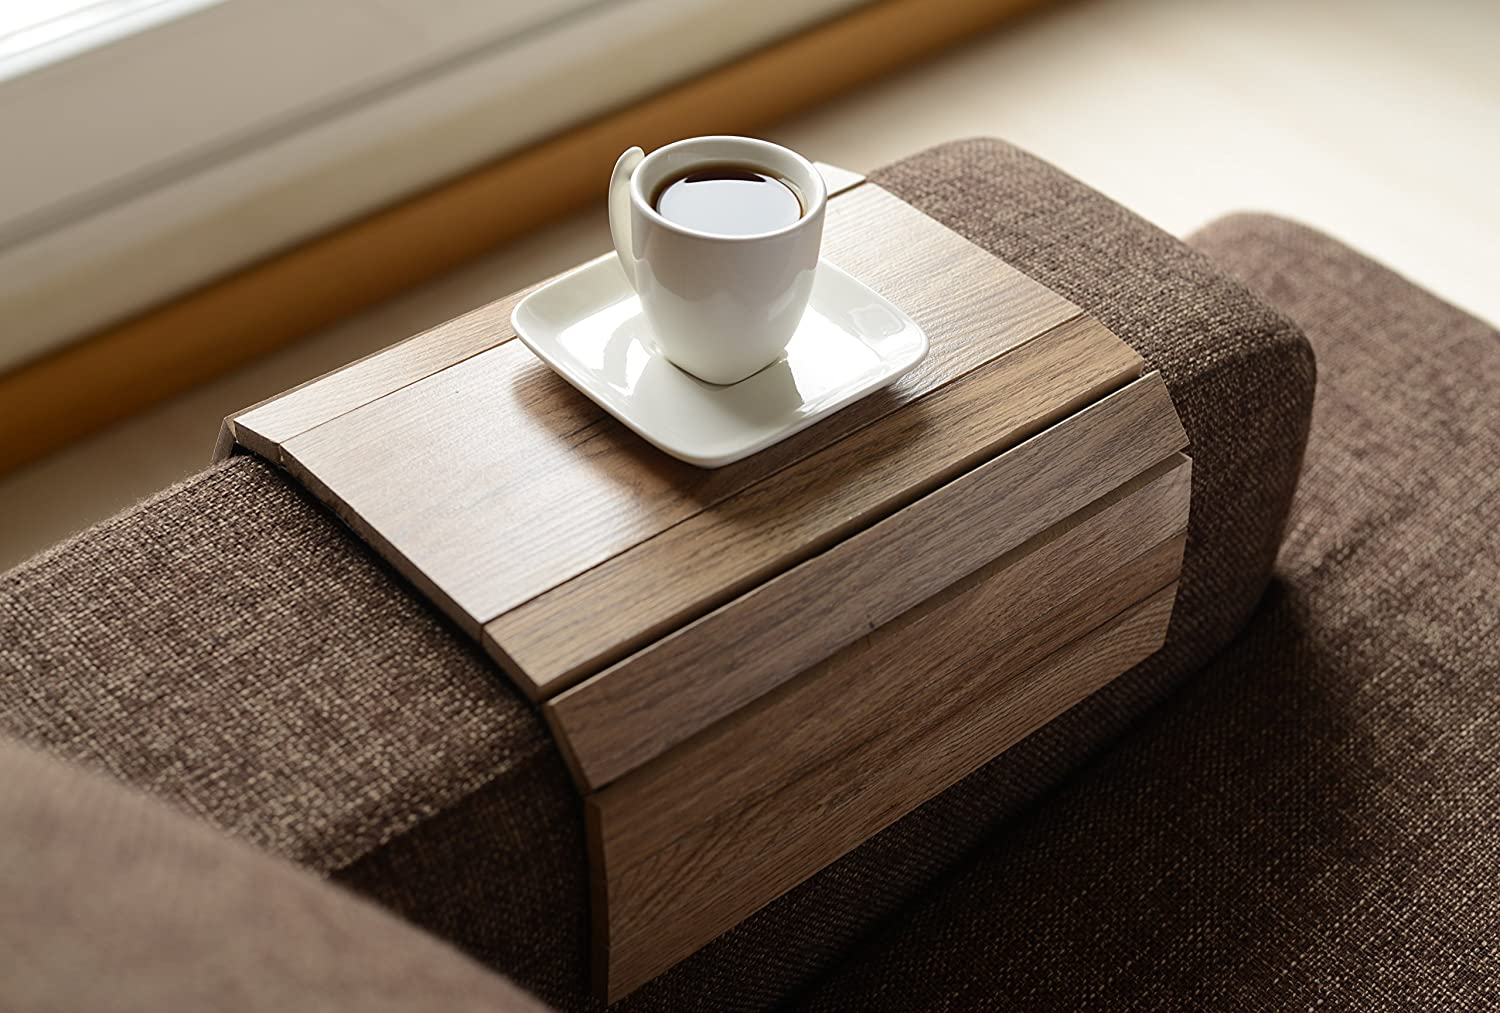 Sofa Tray Table ,Handmade,Sofa Arm Tray,Armrest Tray,Sofa Arm Table,Coffee Table, Wood Gifts, Sofa Table,Wood Tray,Gift, Home & Living